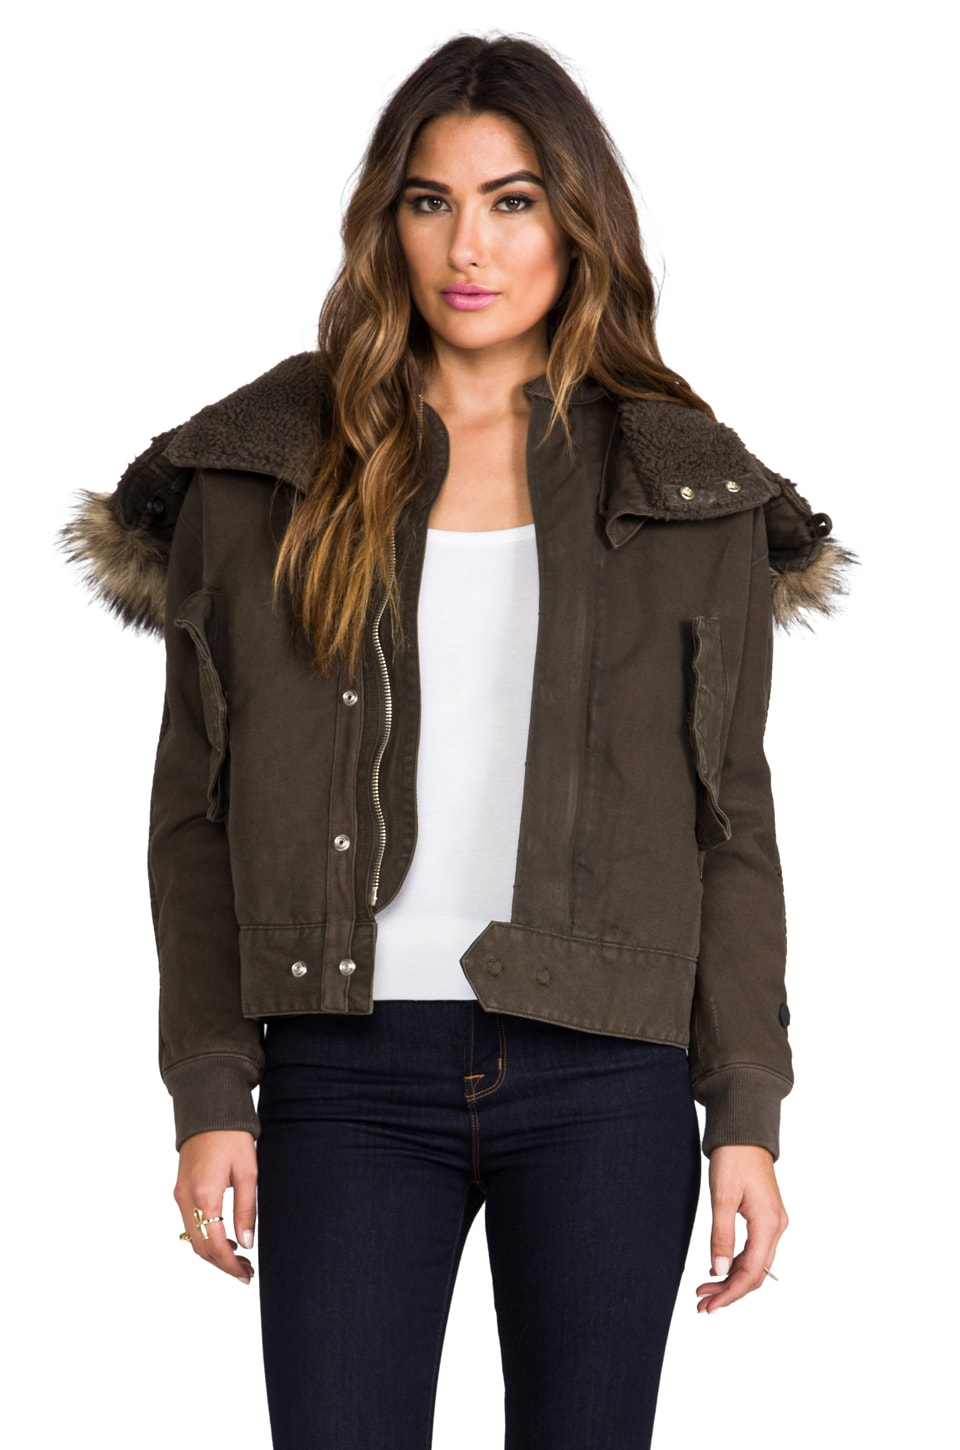 G-Star Army Flight Bomber Jacket with Faux Fur Trim in Arsenic